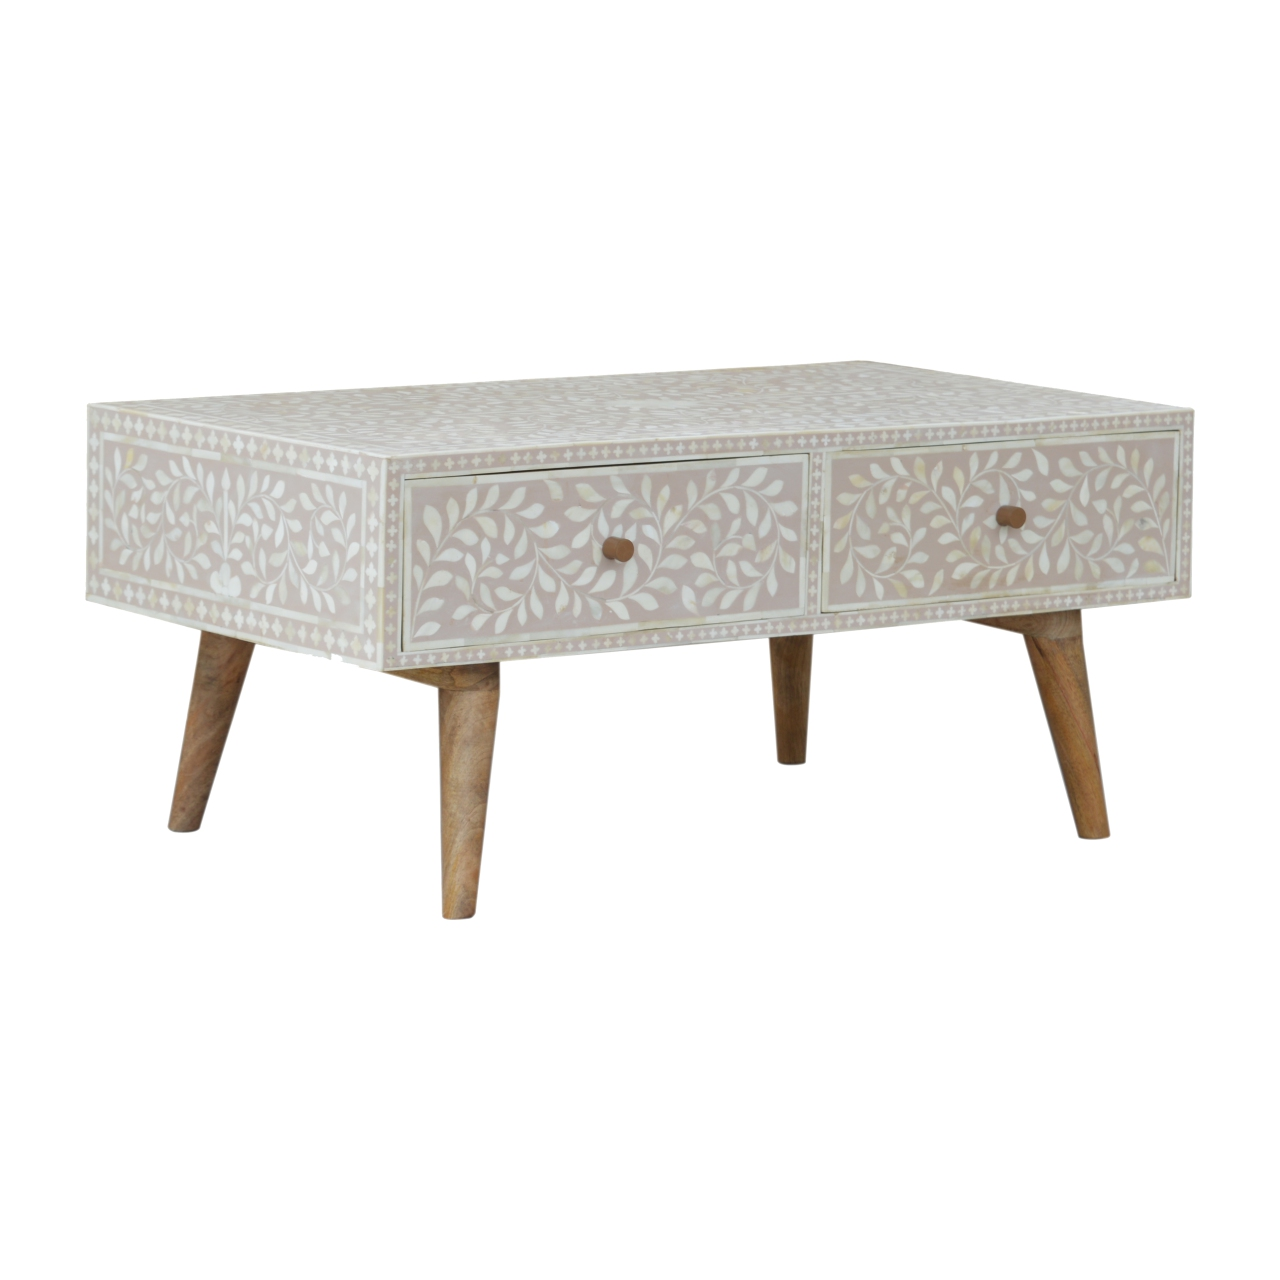 Light-Taupe-Floral-Bone-Inlay-Coffee-Table-1